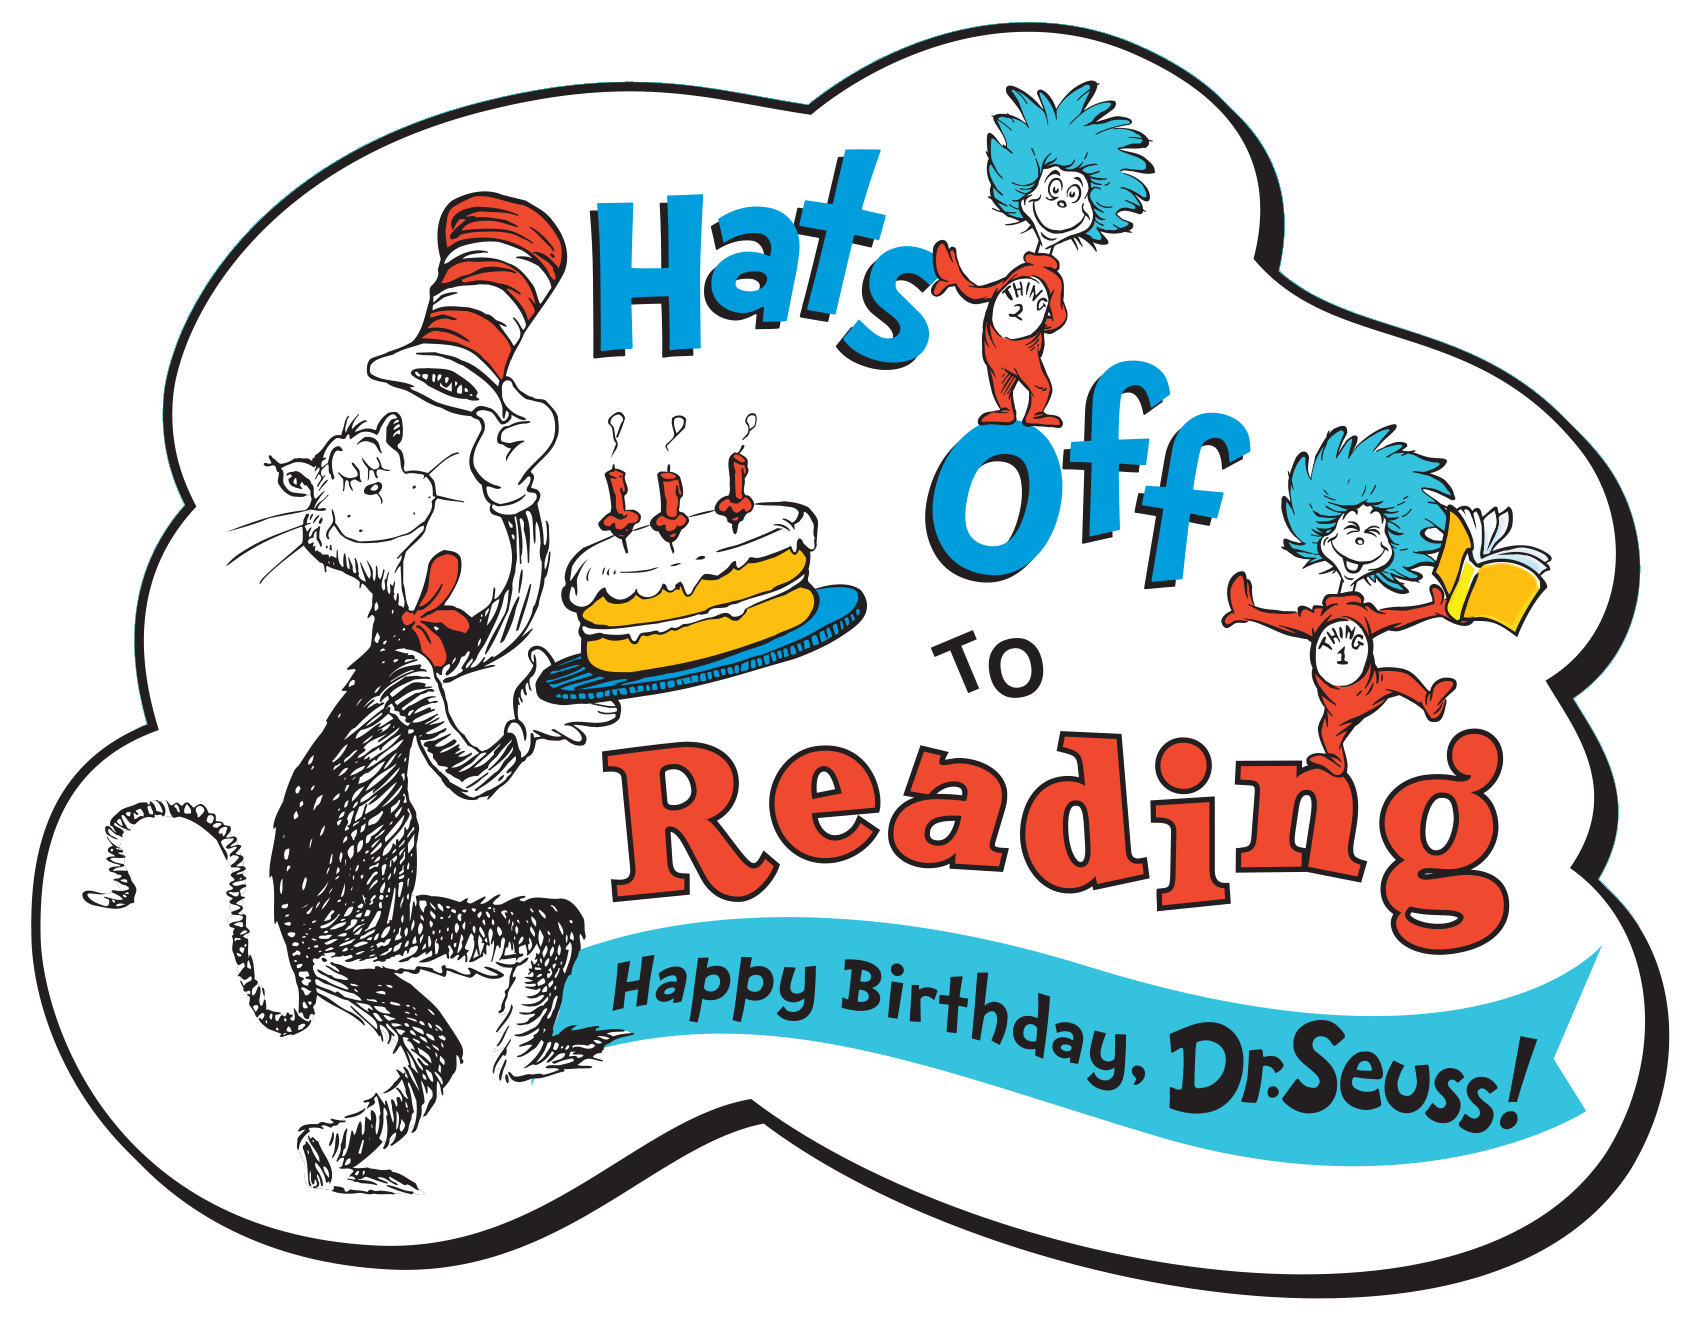 Happy birthday dr seuss clipart free download Happy Birthday Dr. Seuss! free download